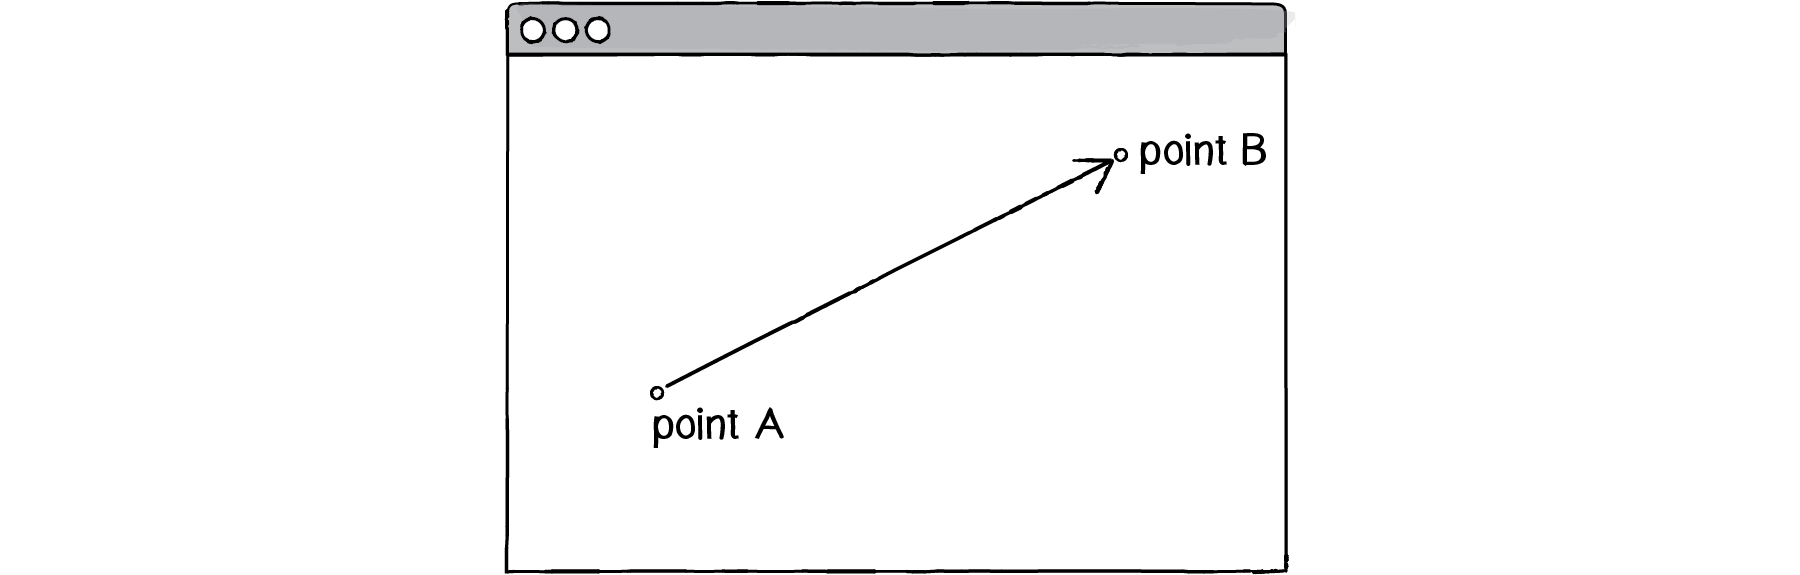 A diagram of a vector with magnitude and direction